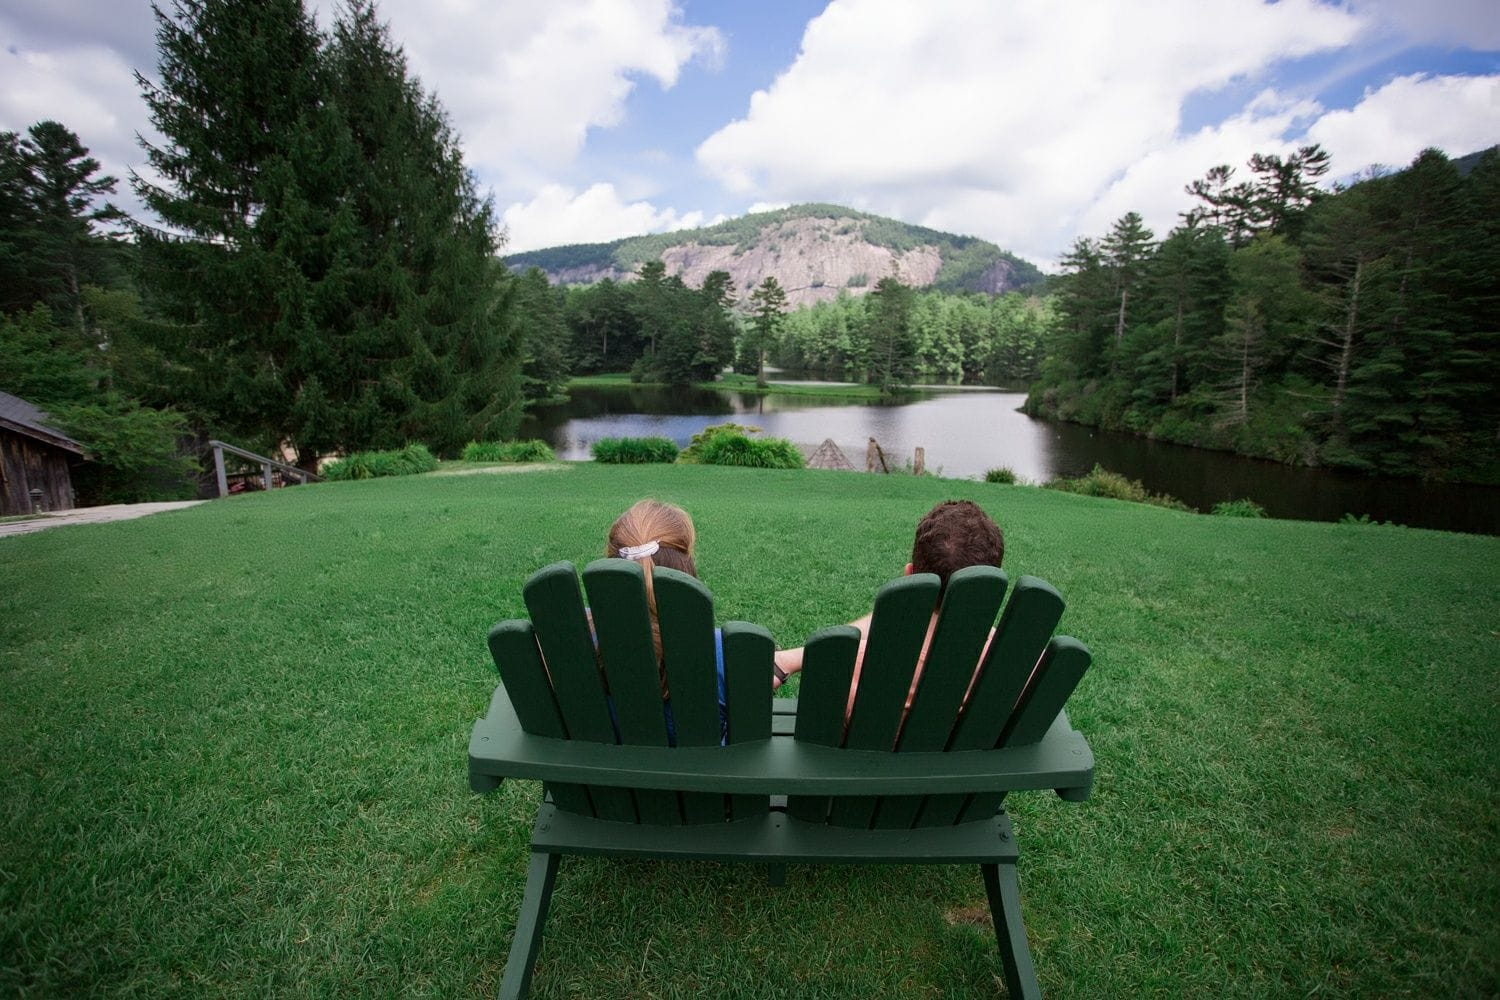 couple relaxing overlooking the mountains and lake in jackson county